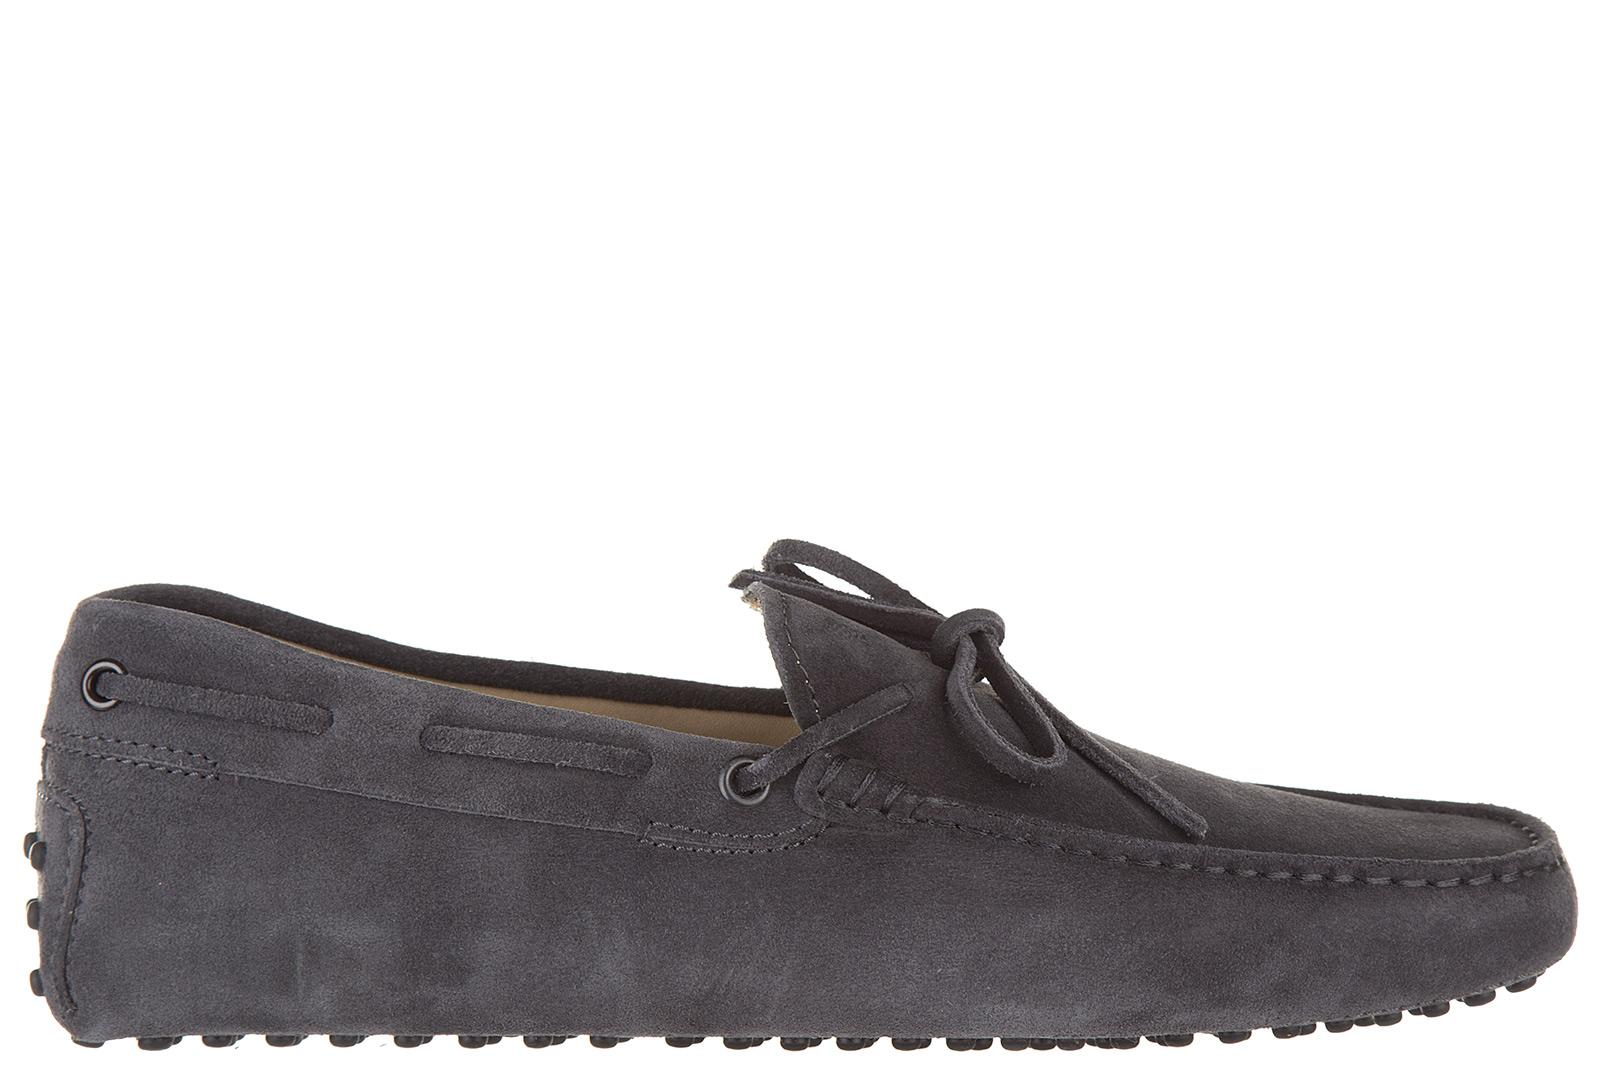 Tod's Men's Suede Loafers Moccasins Laccetto New Gommino 122 In Blue